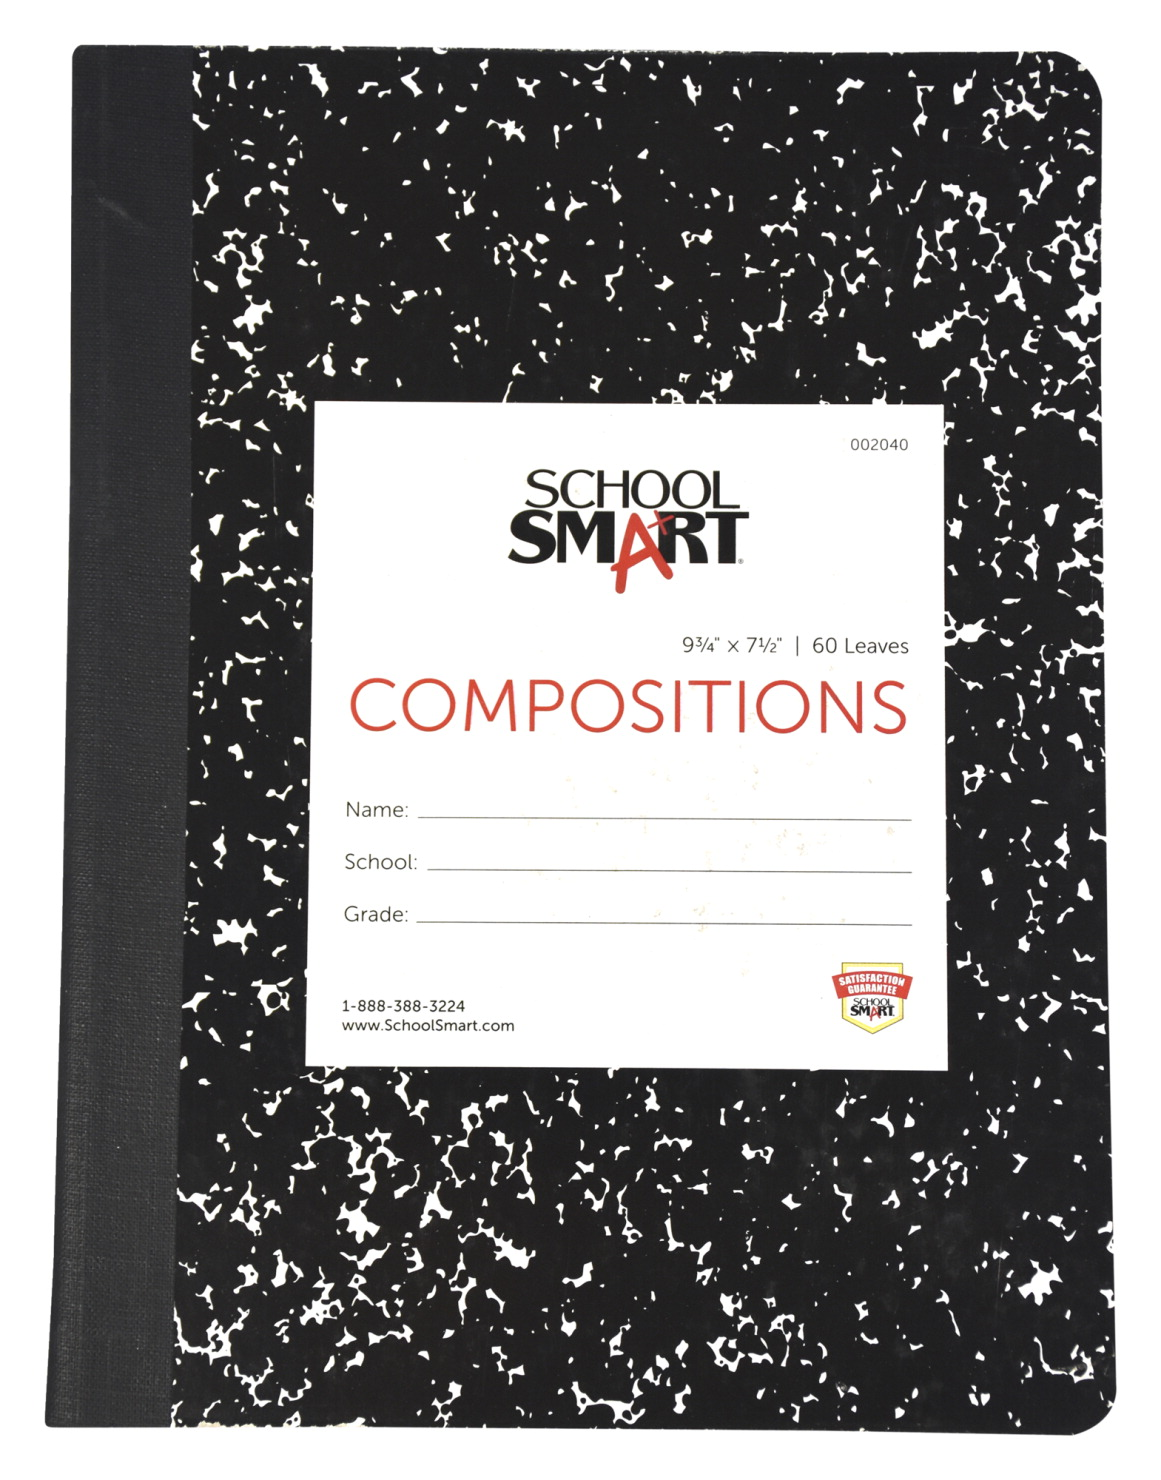 School Smart Hard Cover Ruled Composition Book, 60 Sheets, 9-3/4 x 7-1/2 Inches